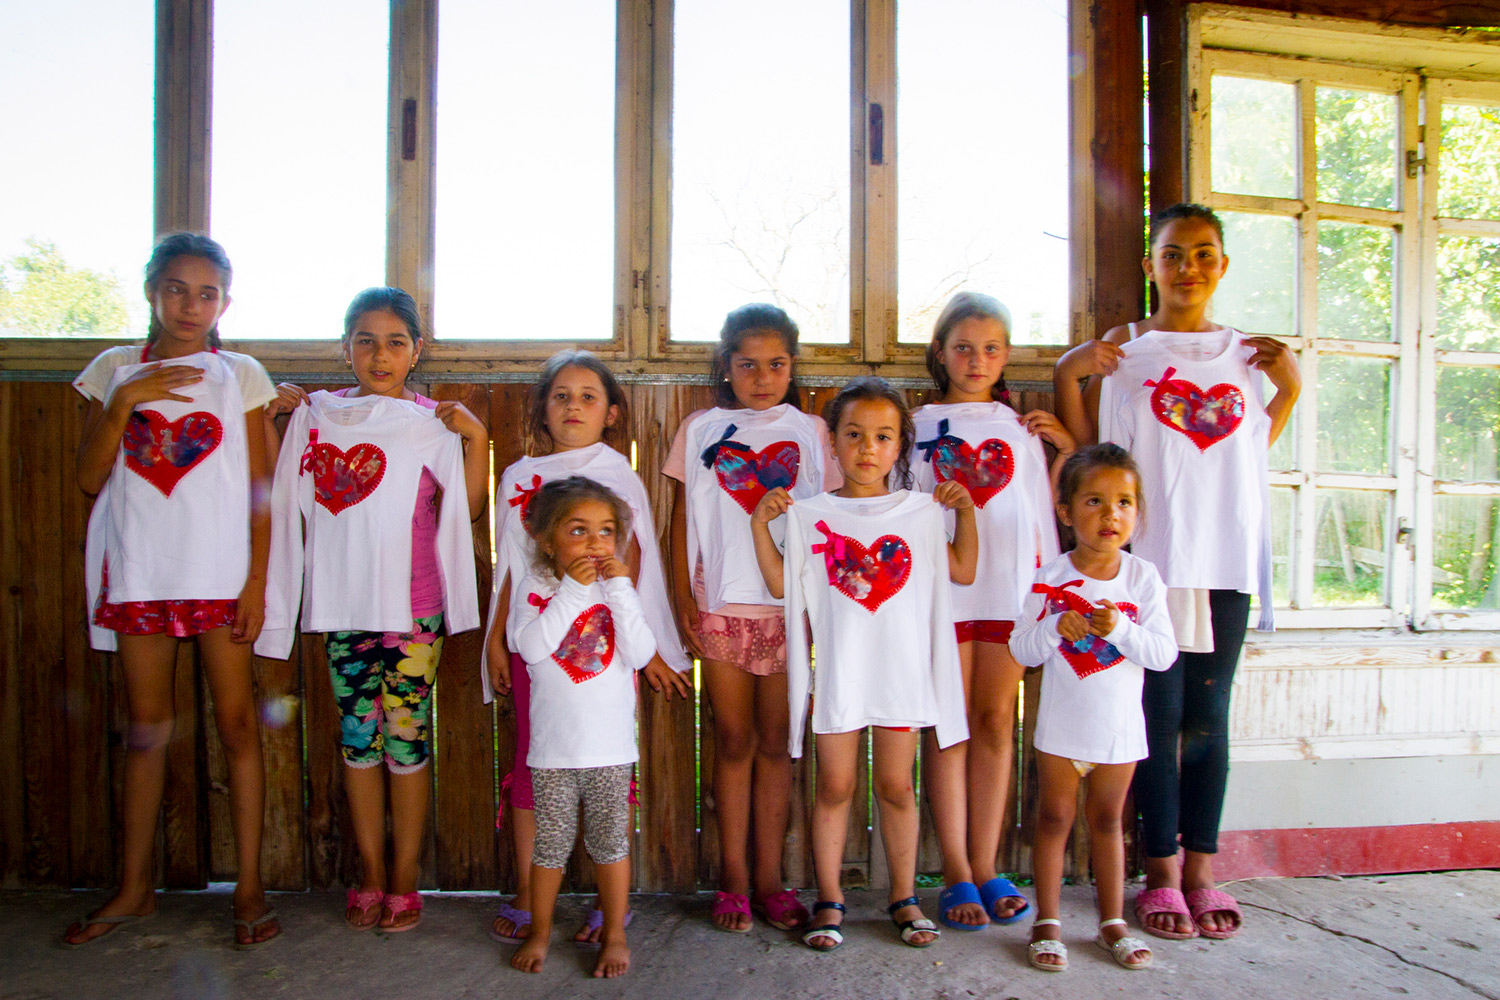 Hearts for Romania - the girls together